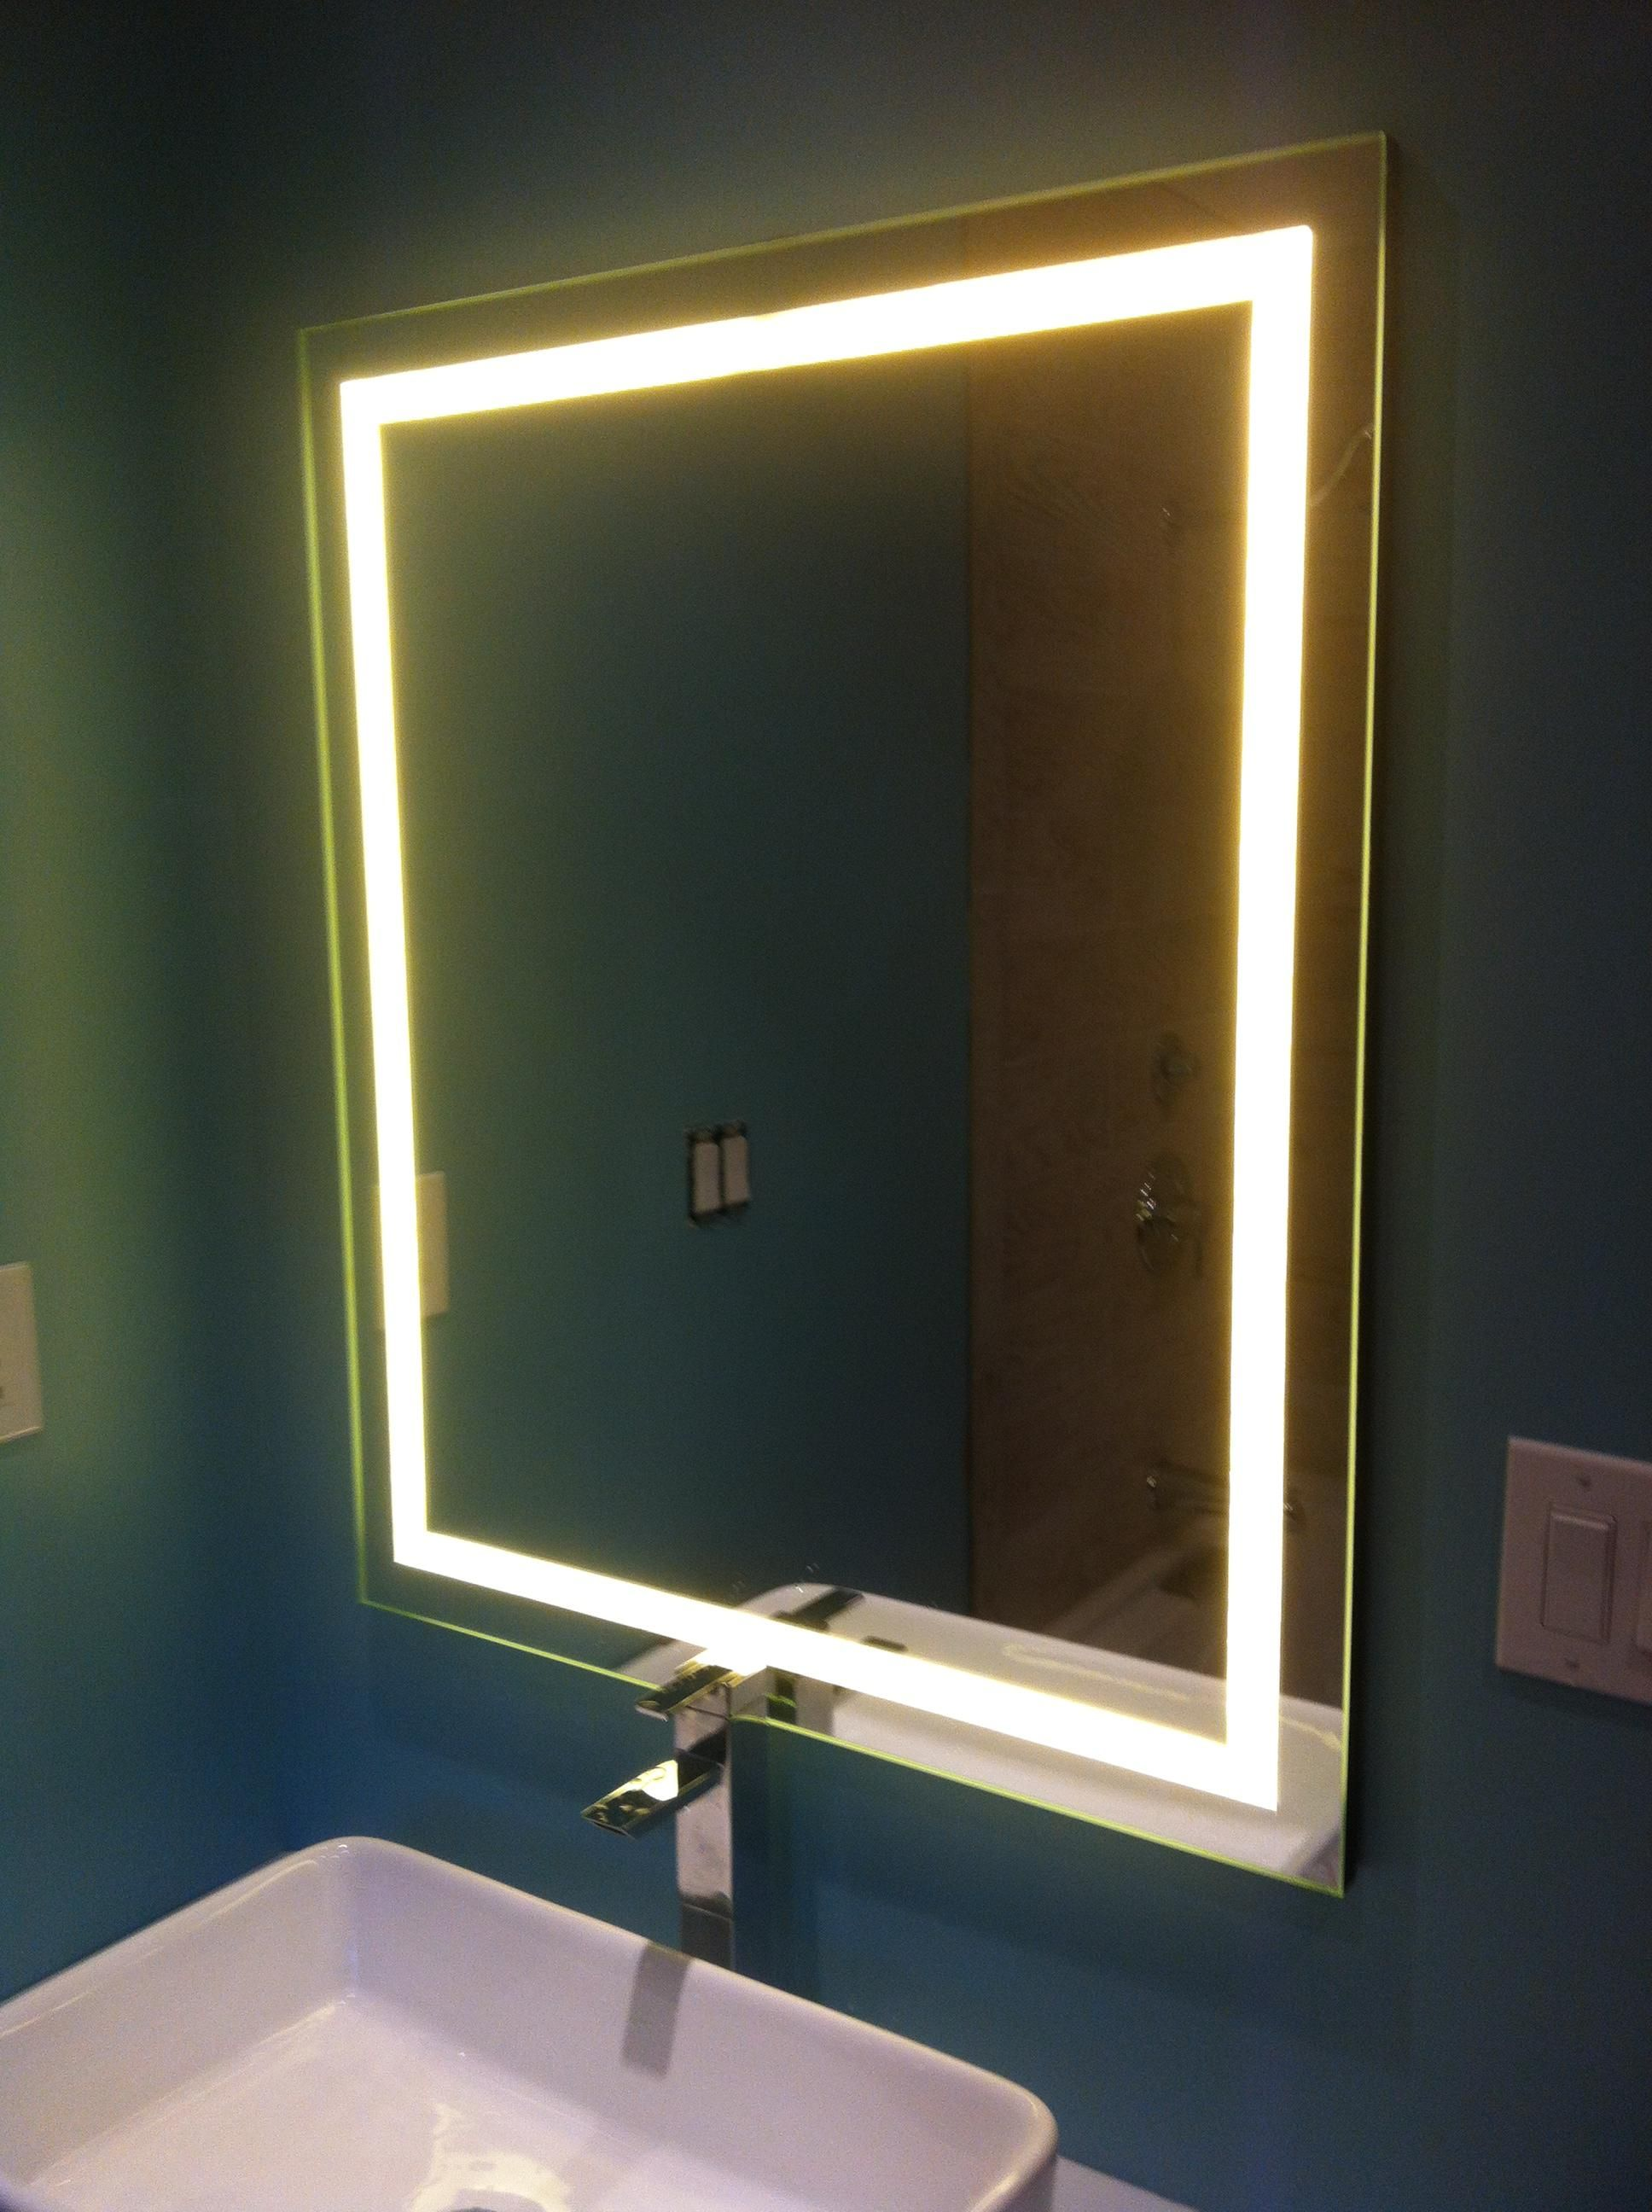 Led backlit mirror backlit mirror backlit bathroom Bathroom lighted vanity mirrors